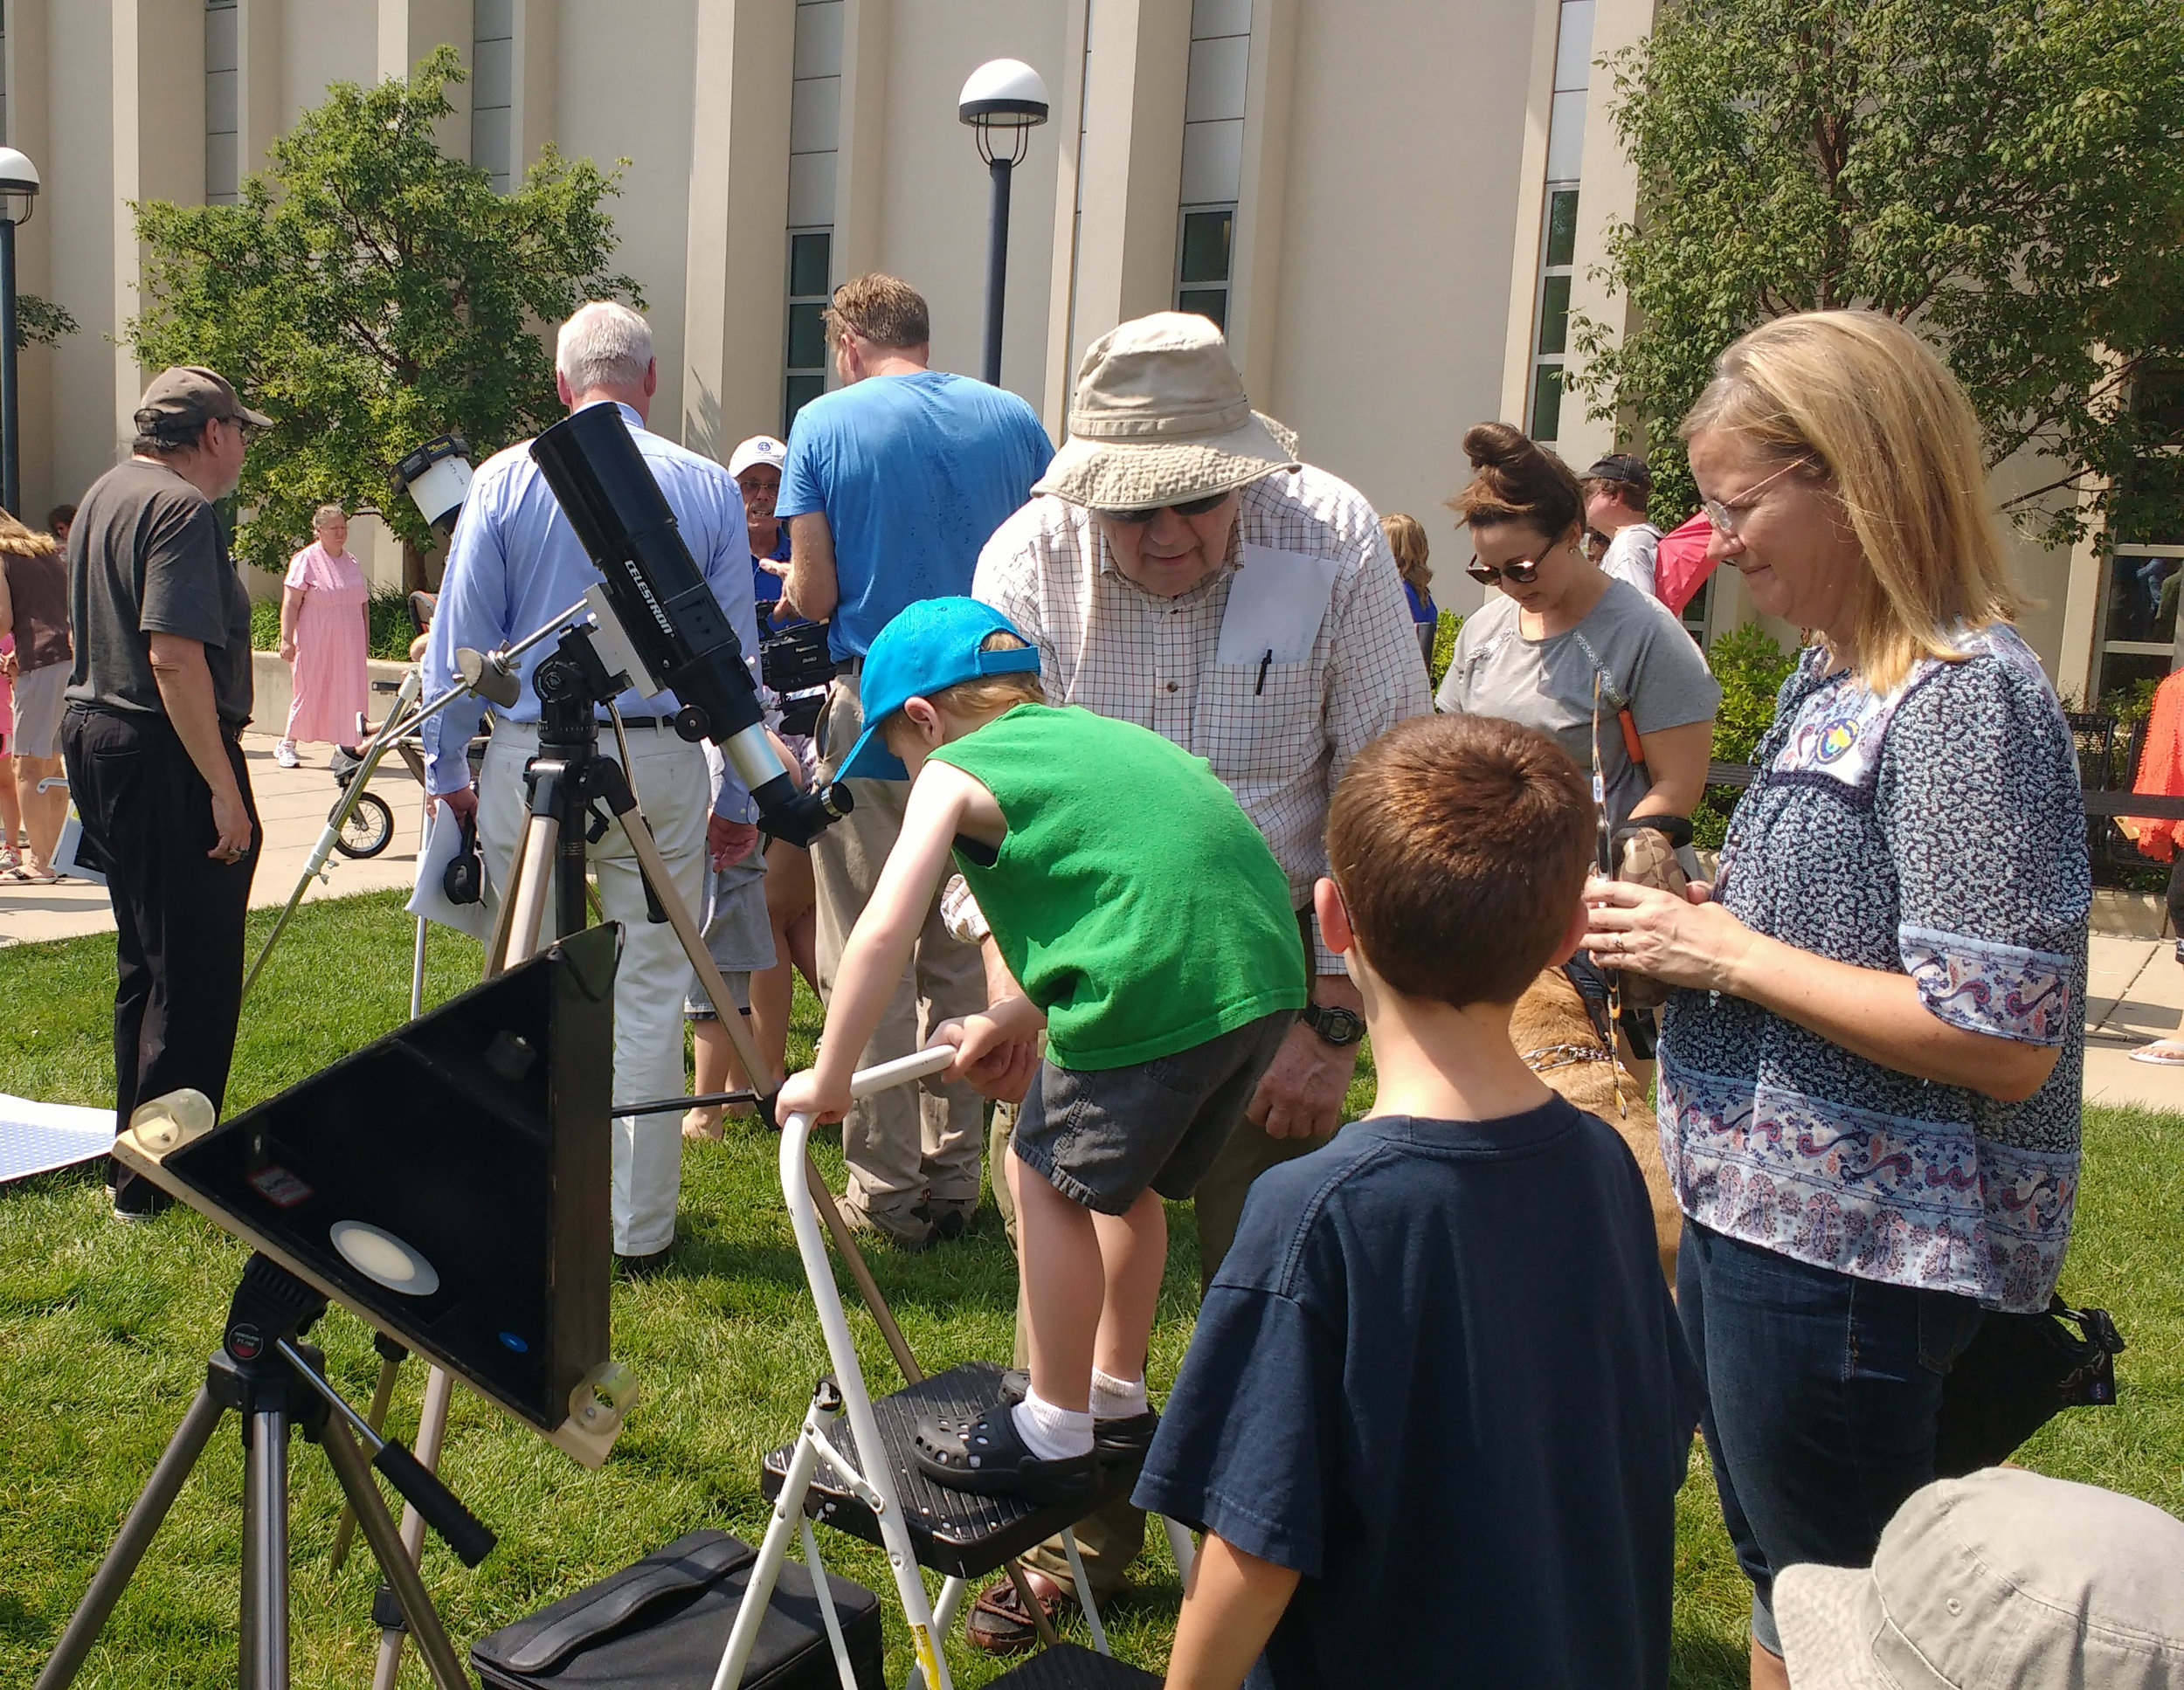 During the 2017 total solar eclipse, FWAS volunteers shared their expertise and telescopes with the public at the downtown ACPL library.